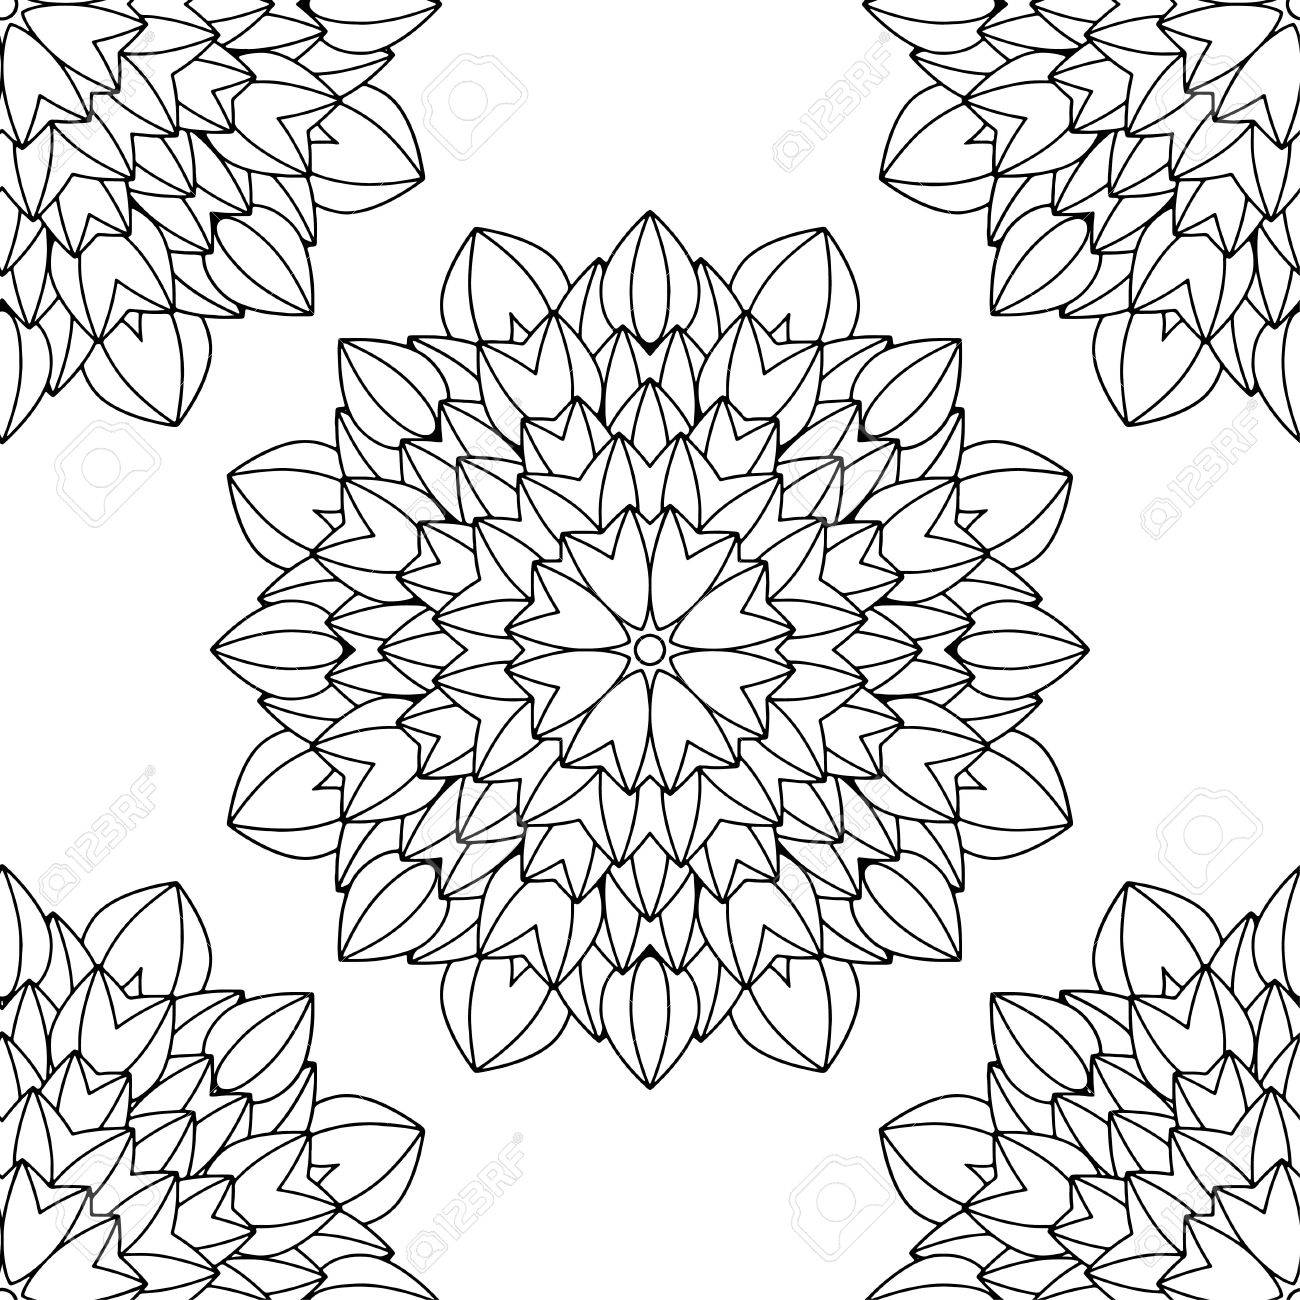 Doodles Mandala Pattern. Adult Coloring Page. Black And White ...